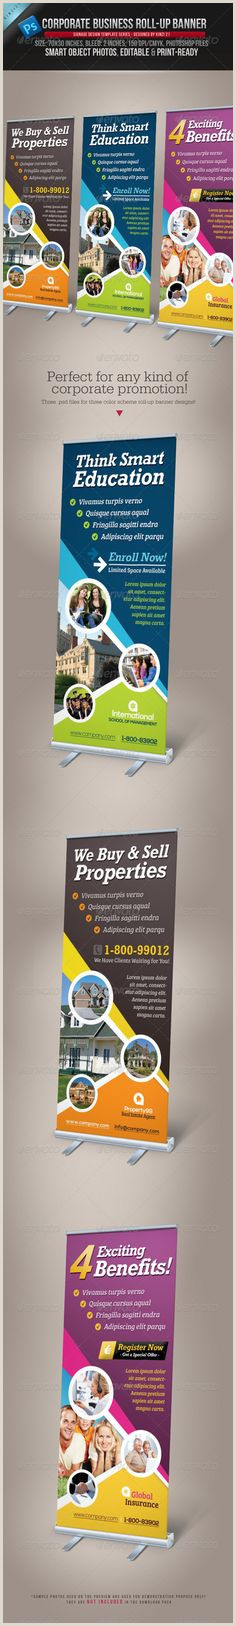 Retractable Signs And Banners Best Of Retractable Signs